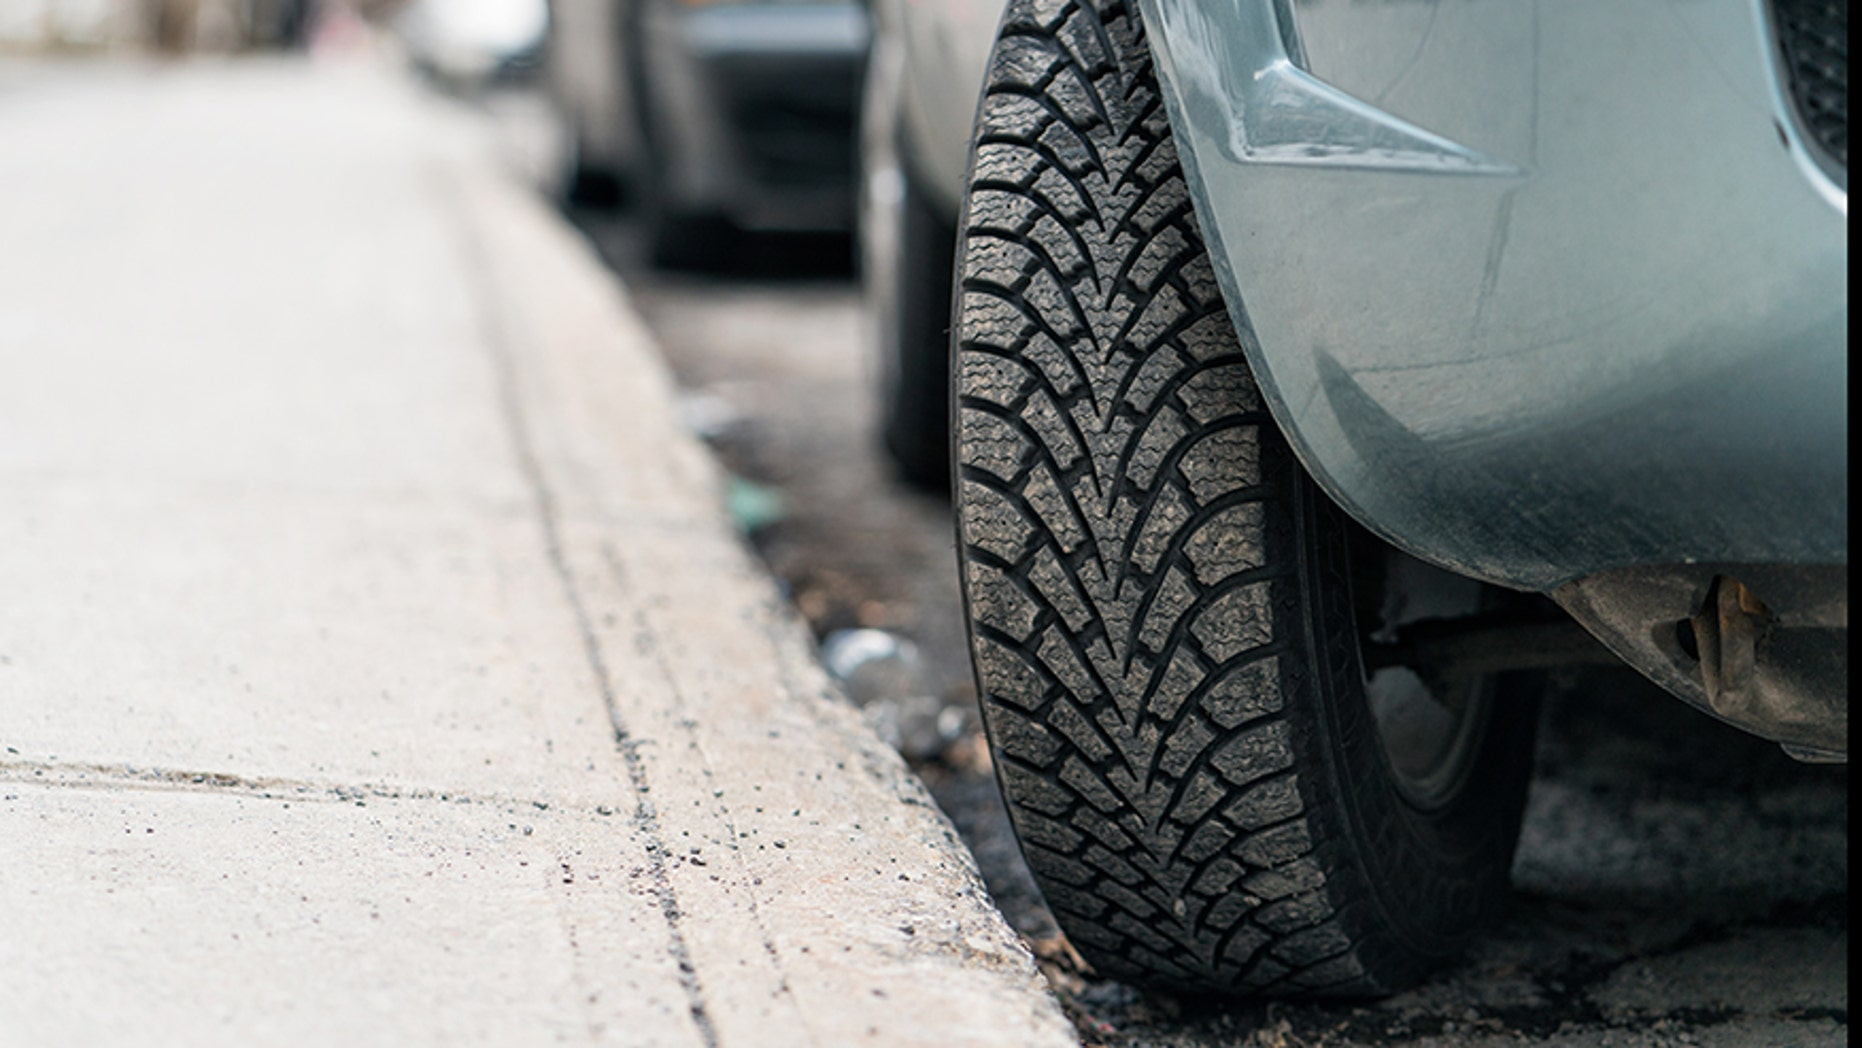 Close-up of a car parked on a hill, with the tire turned into the curb to stop  the car from rolling forward.